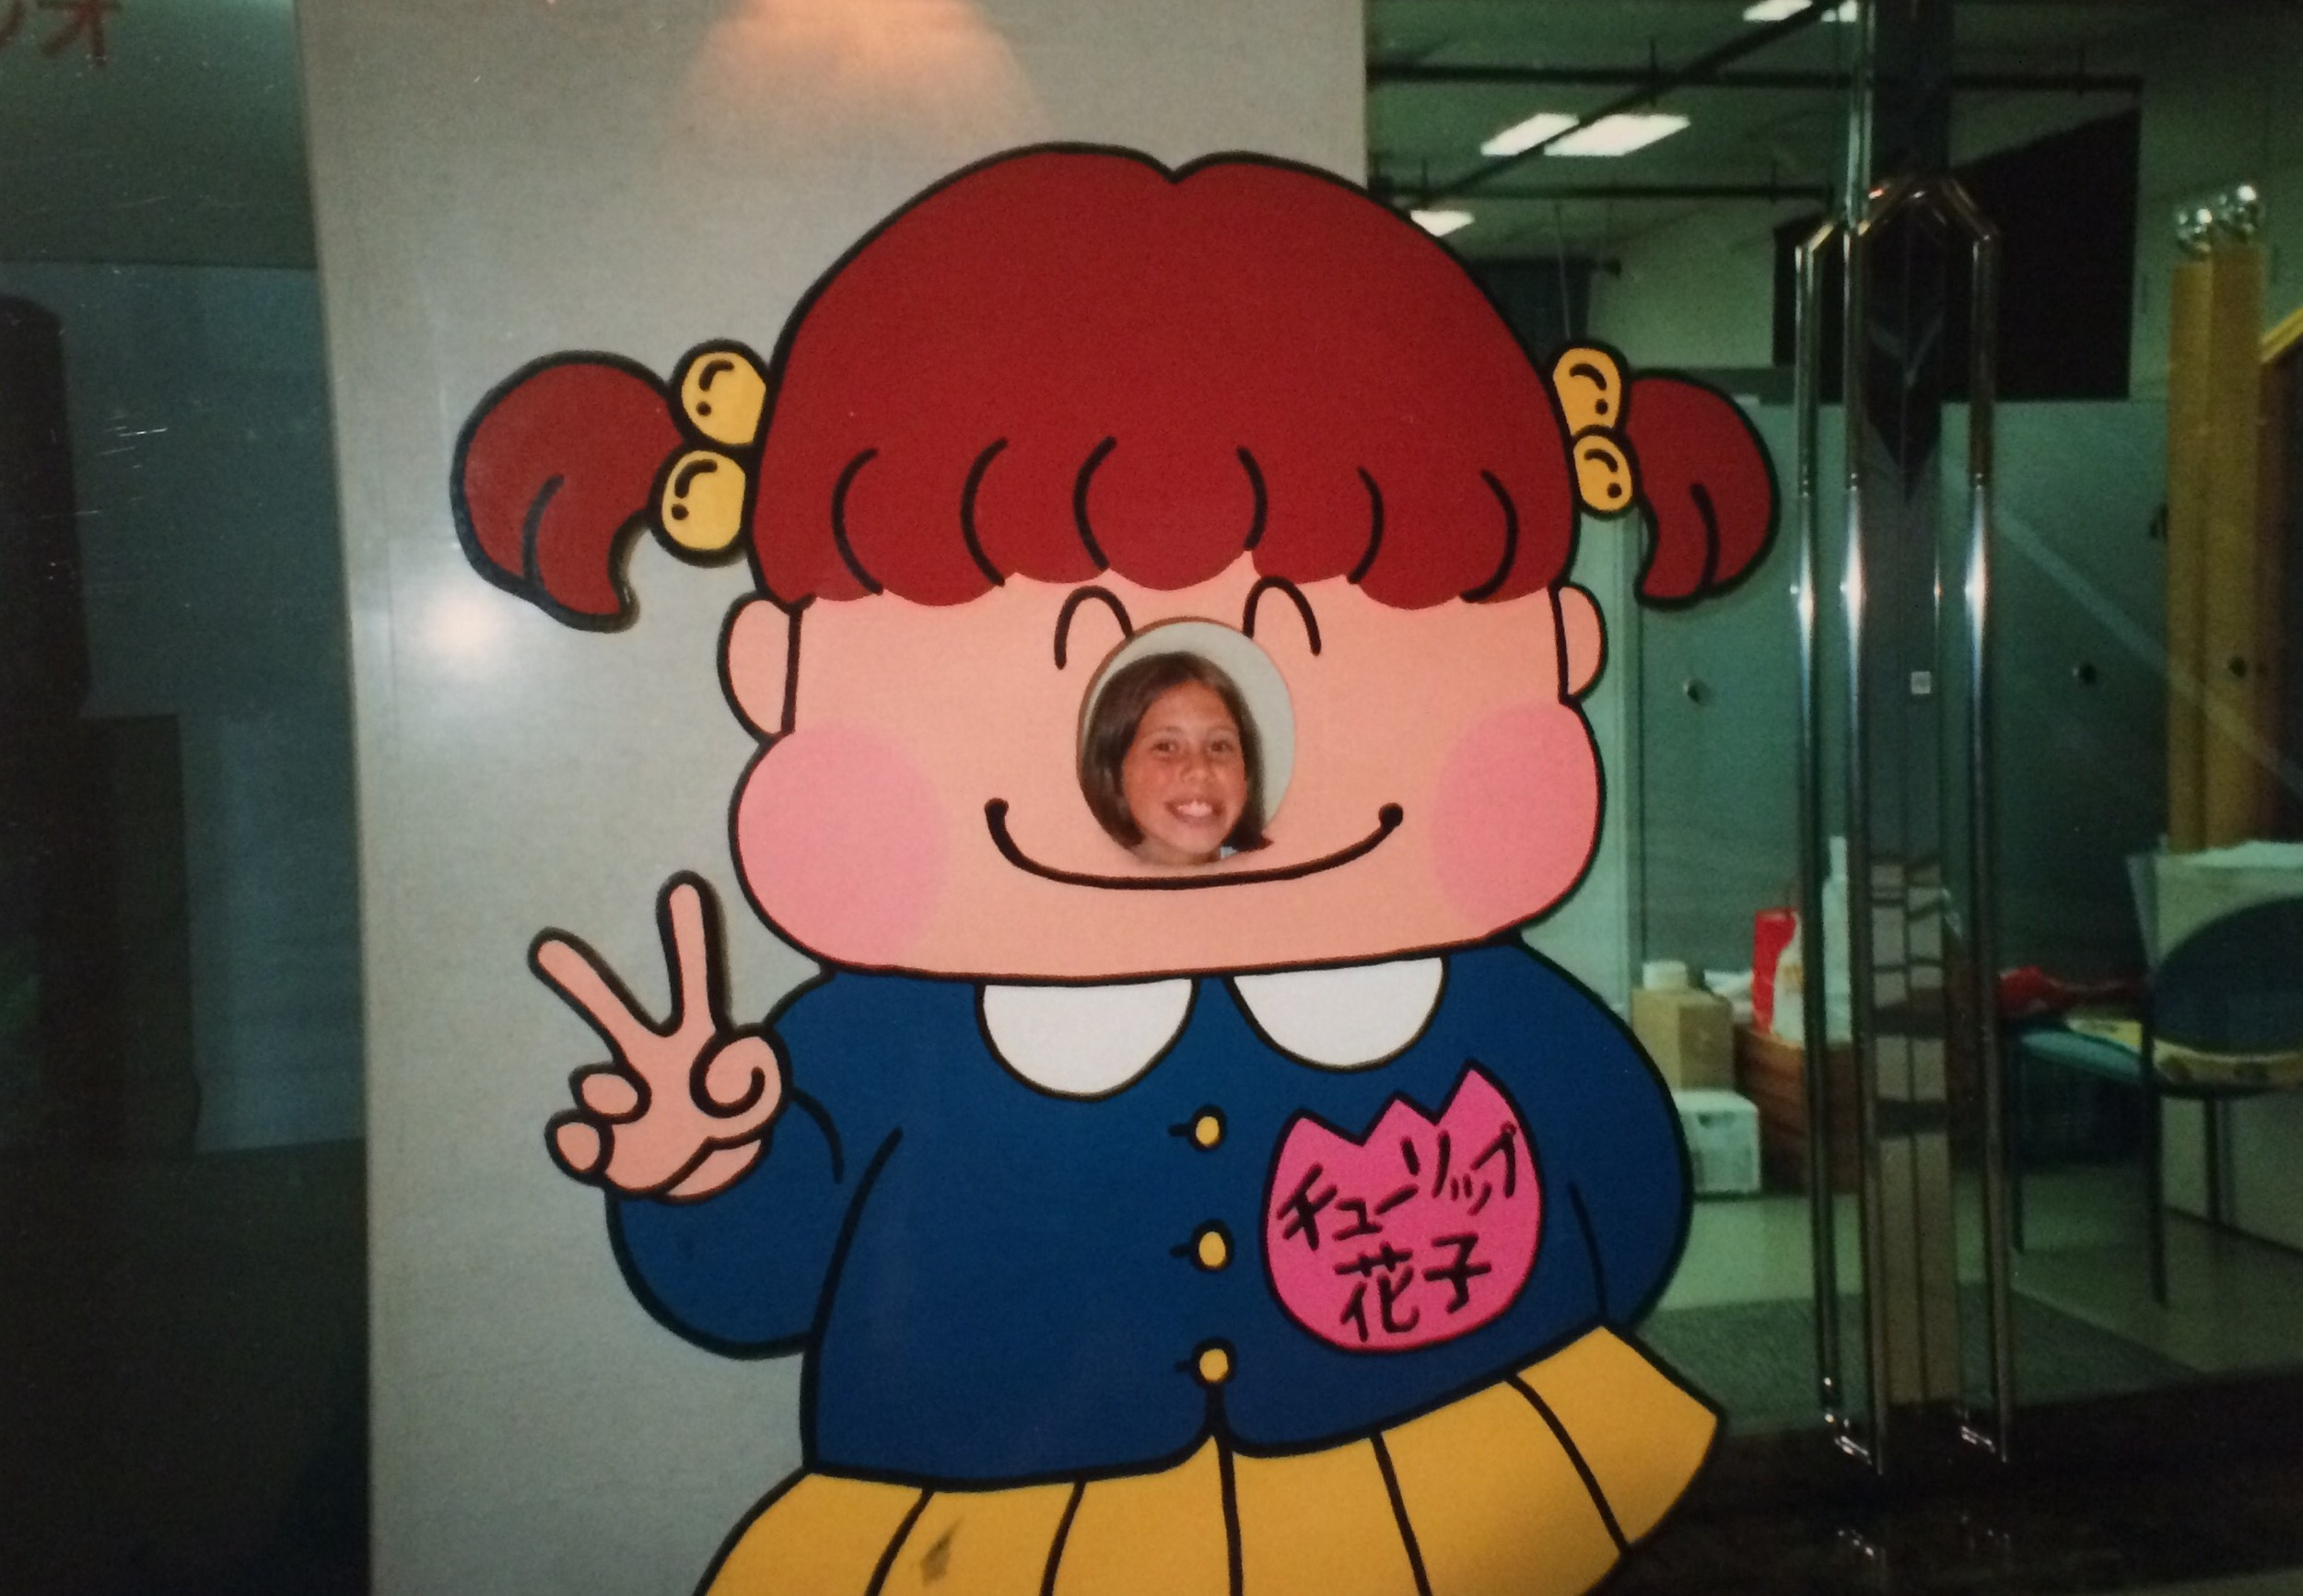 On my first trip to Japan in 1996.